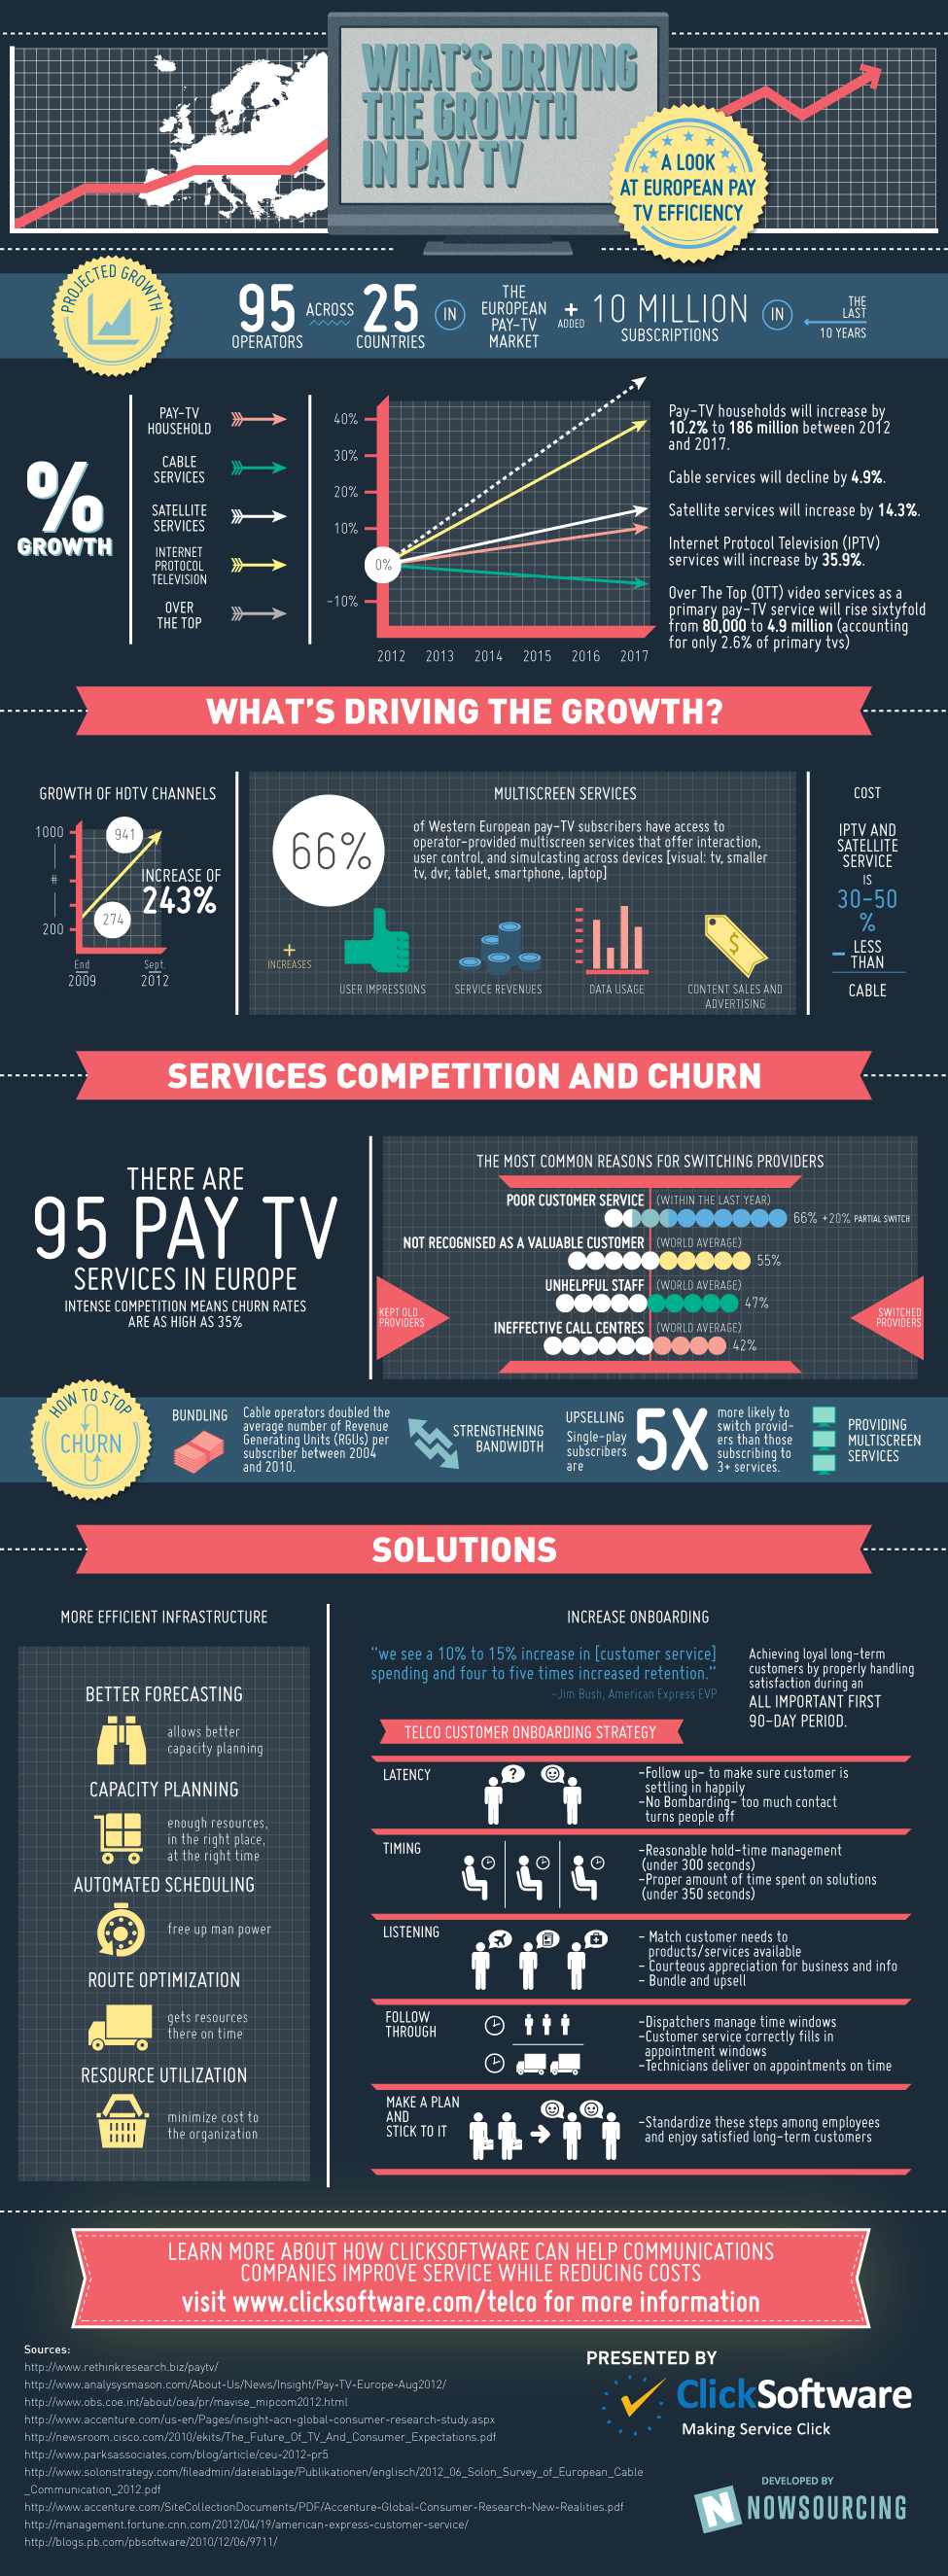 What's Driving Pay TV Growth in Europe?